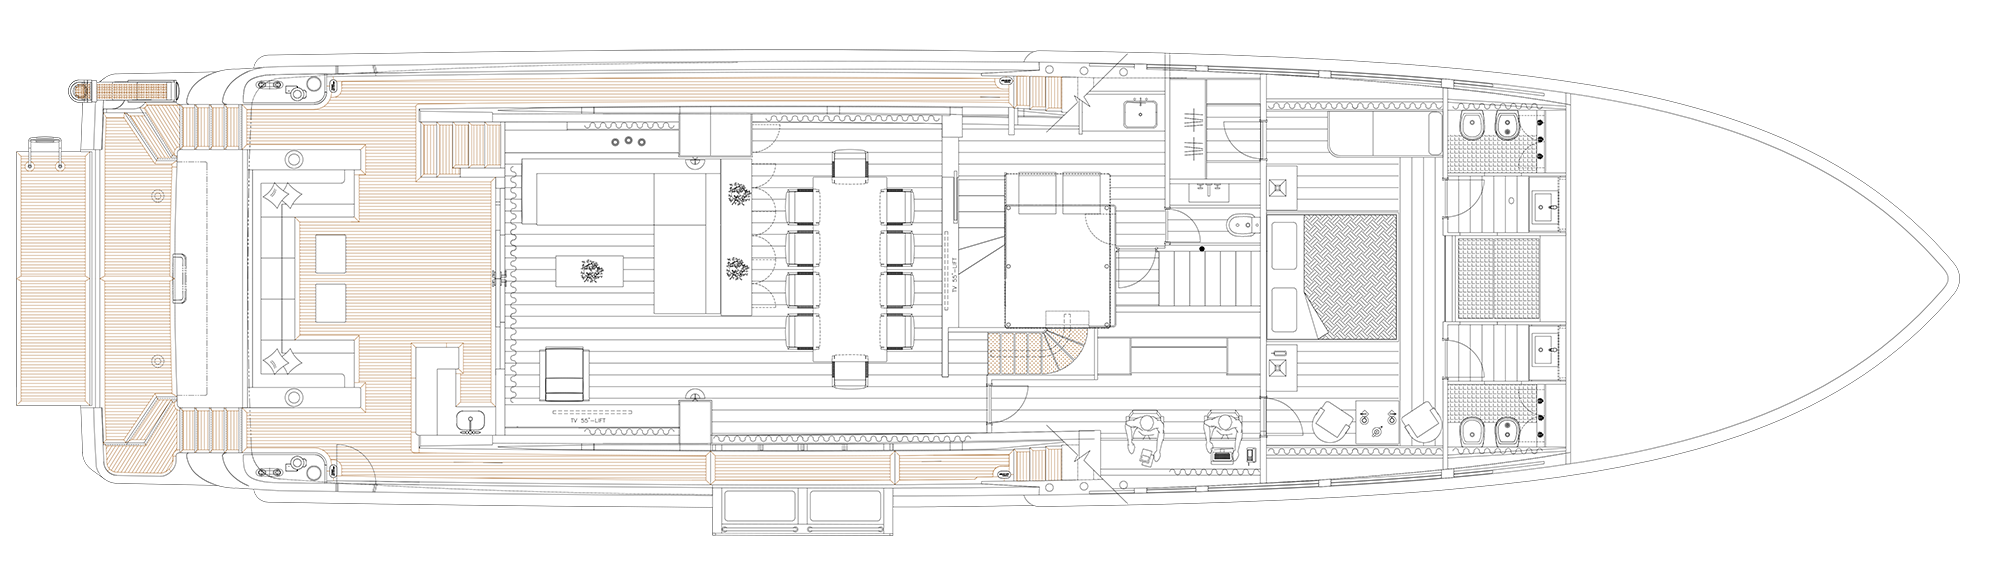 MAIN DECK - CASCO 01